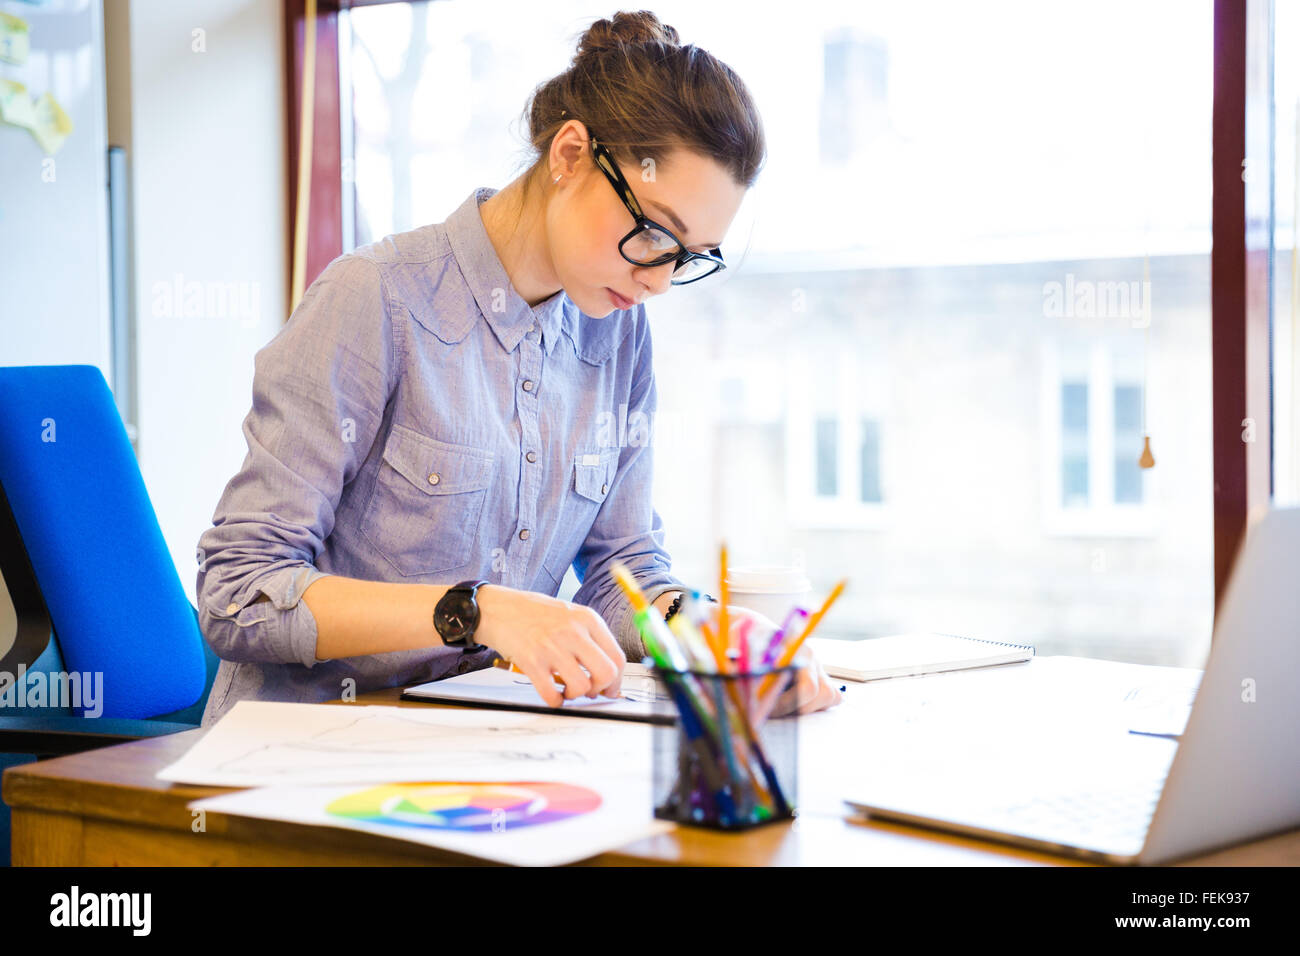 Concentrated pretty young woman fashion designer sitting and drawing sketches in office - Stock Image